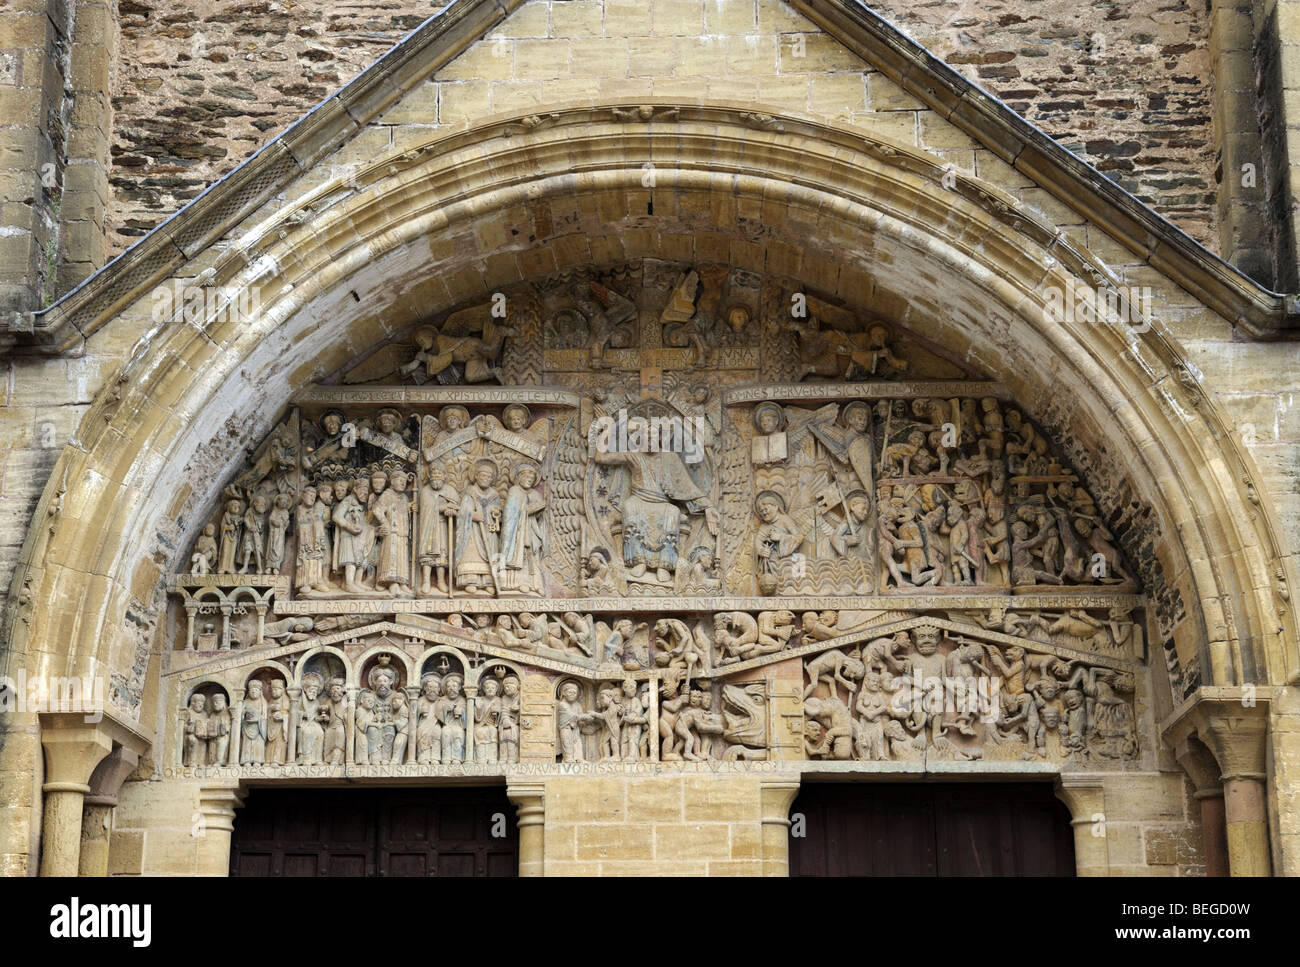 The doorway of the Church in the historic hillside village of Conques, France - Stock Image